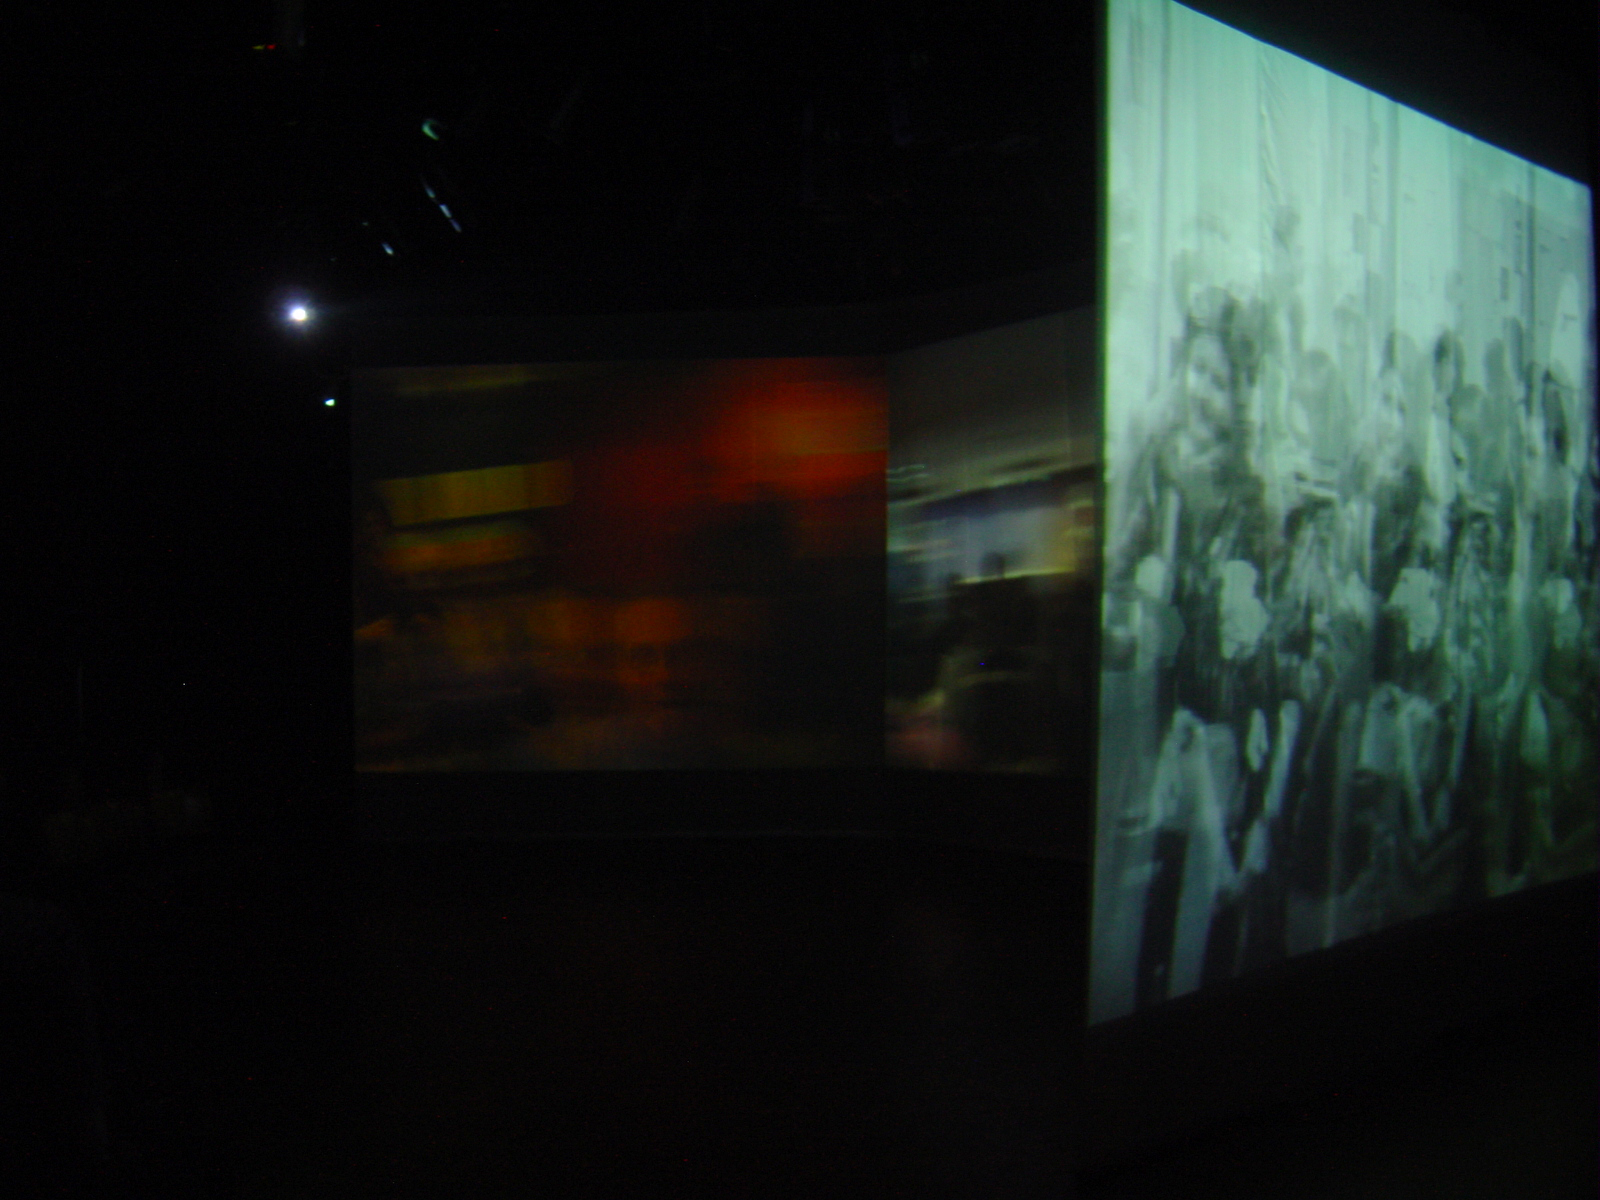 DesConcerto  [2003]  Real-time video processing (Max/Jitter) in audio/video installation with music by composer Vania Dantas Leite and pre-recorded video by visual artist Simone Michelin.